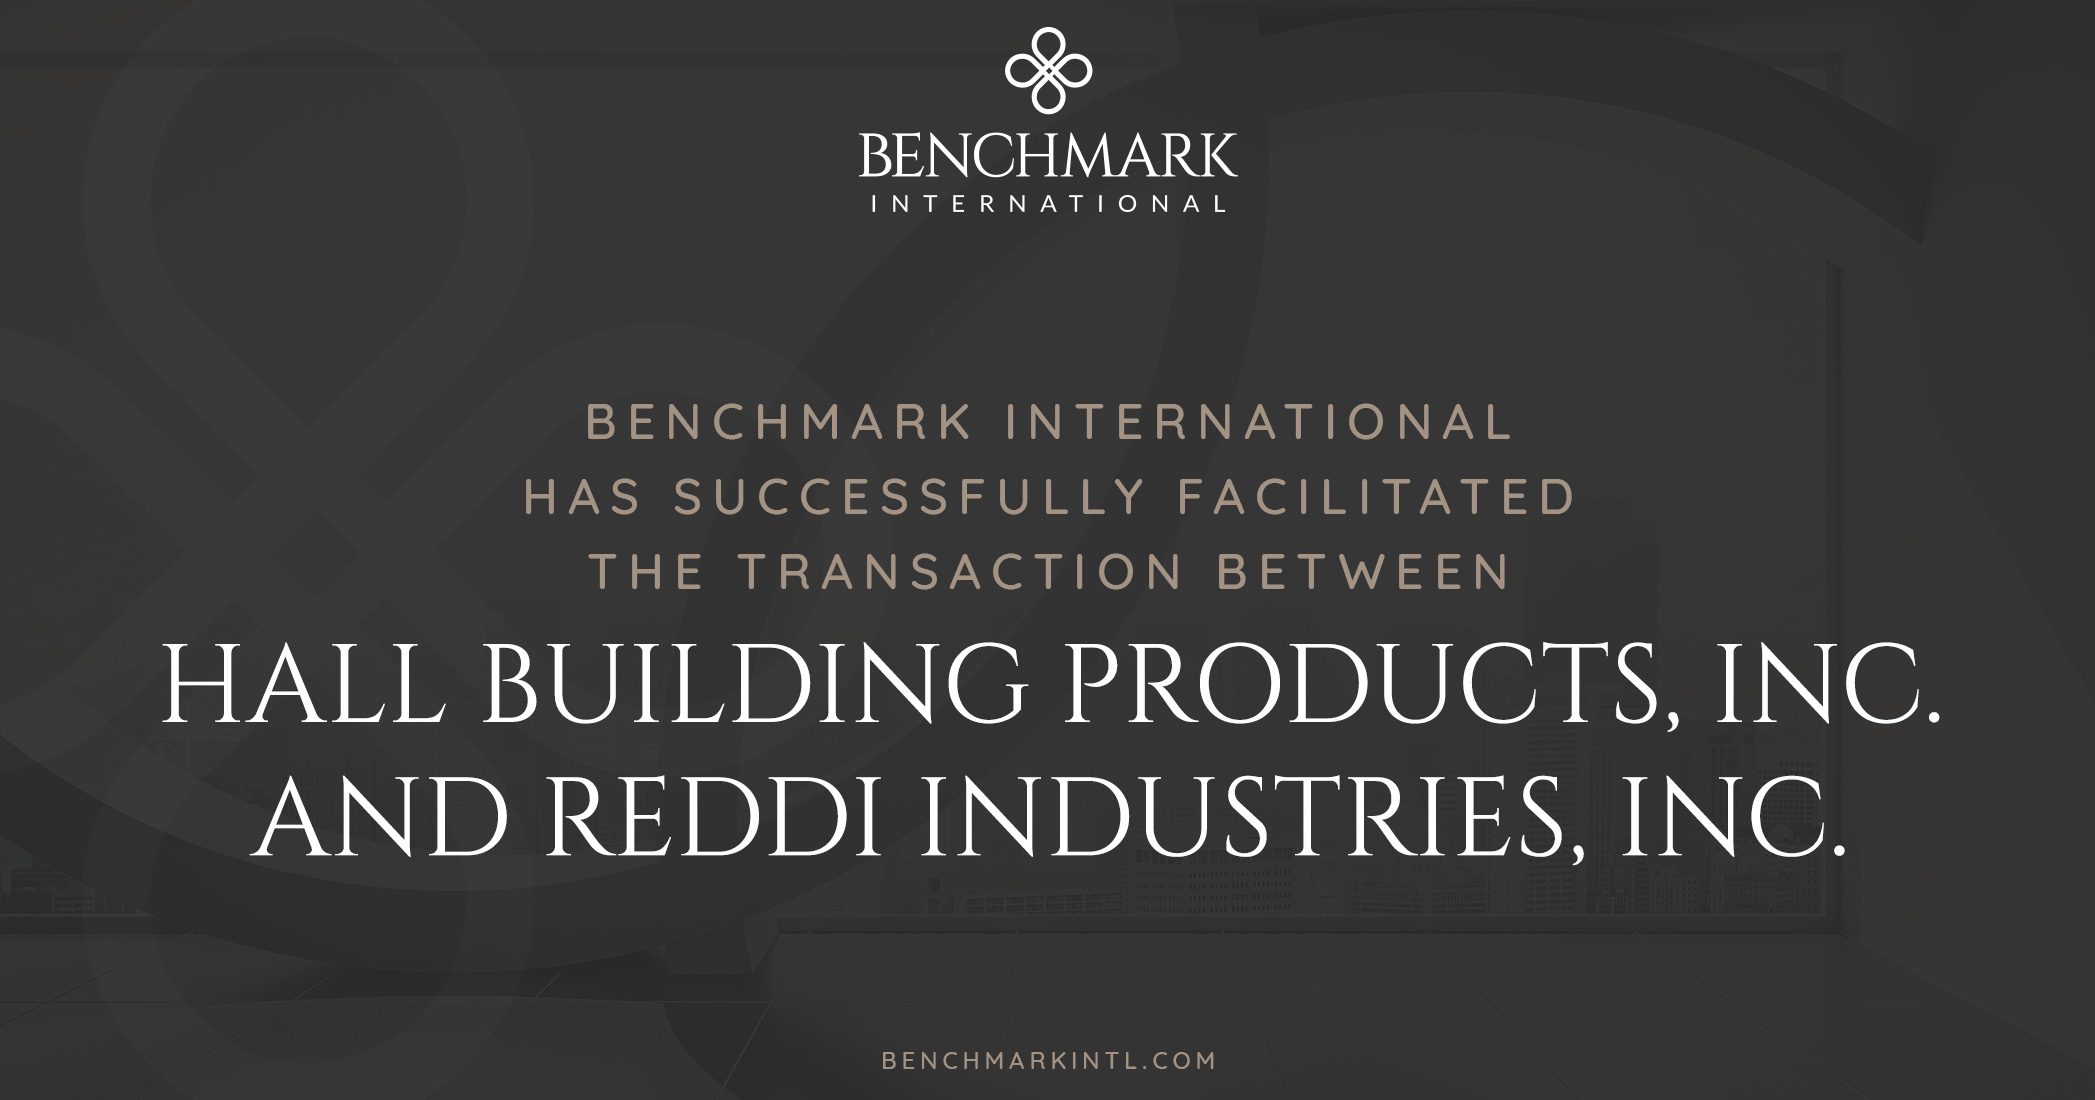 Benchmark International Successfully Facilitated the Transaction Between Hall Building Products, Inc. and Reddi Industries, Inc.